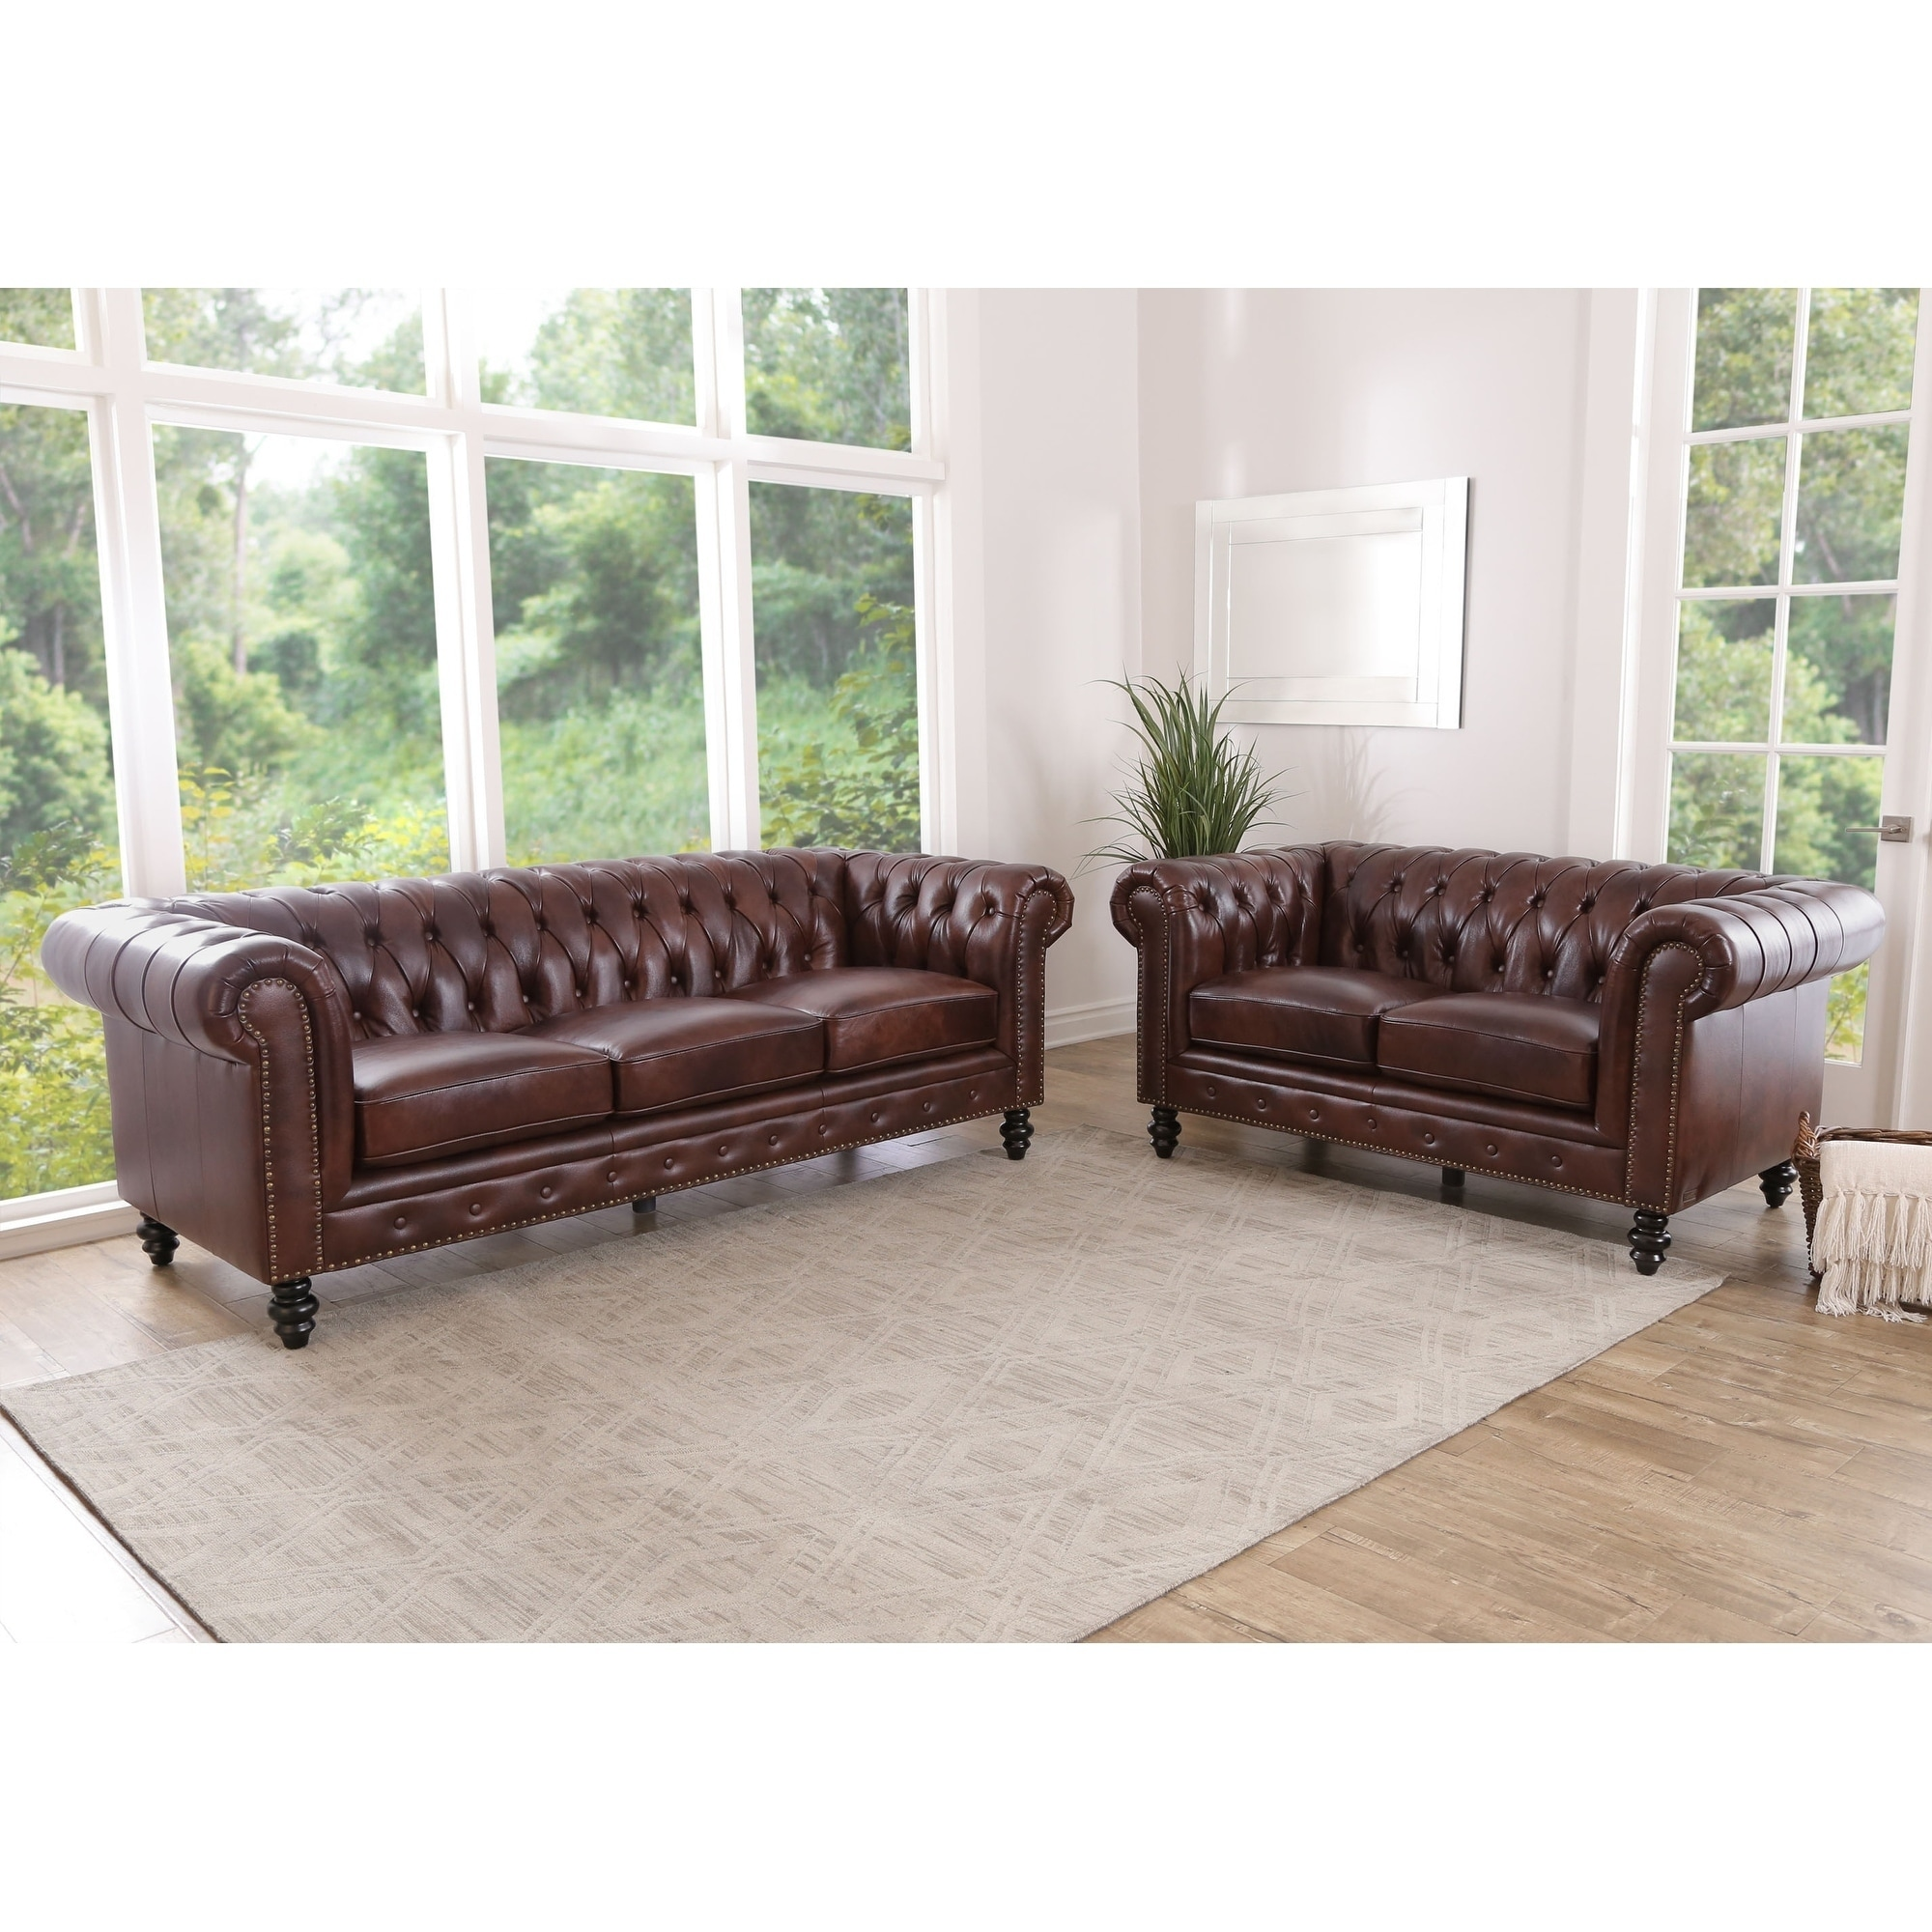 225 & Buy Living Room Furniture Sets Online at Overstock | Our Best Living ...